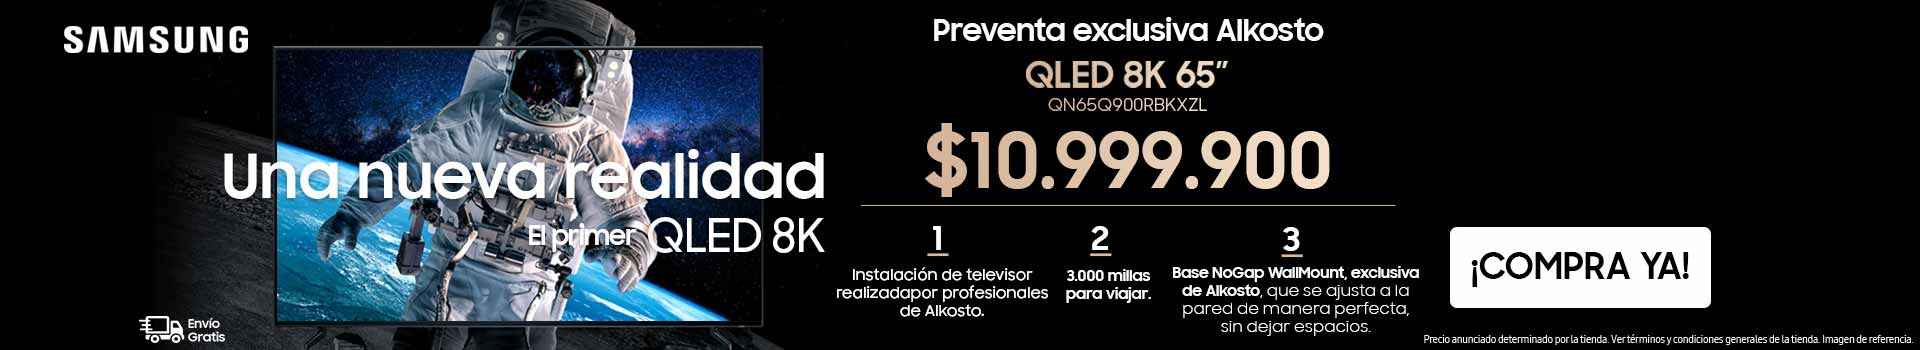 AK-TV-SAMSUNG-65Q900-PREVENTA-Categoria_Televisores1-16JUL